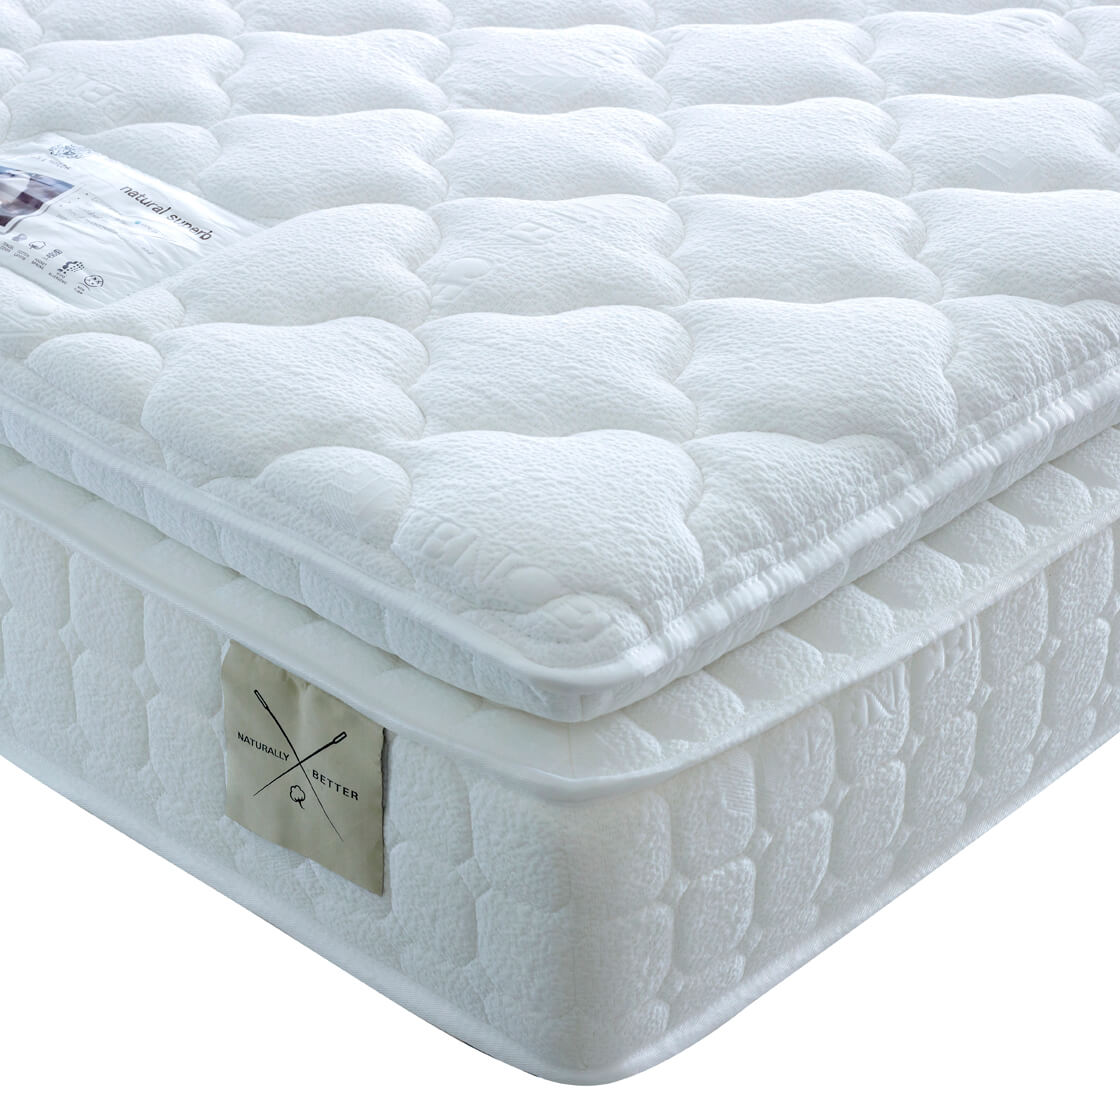 Natural Superb 2000 next day delivery mattress